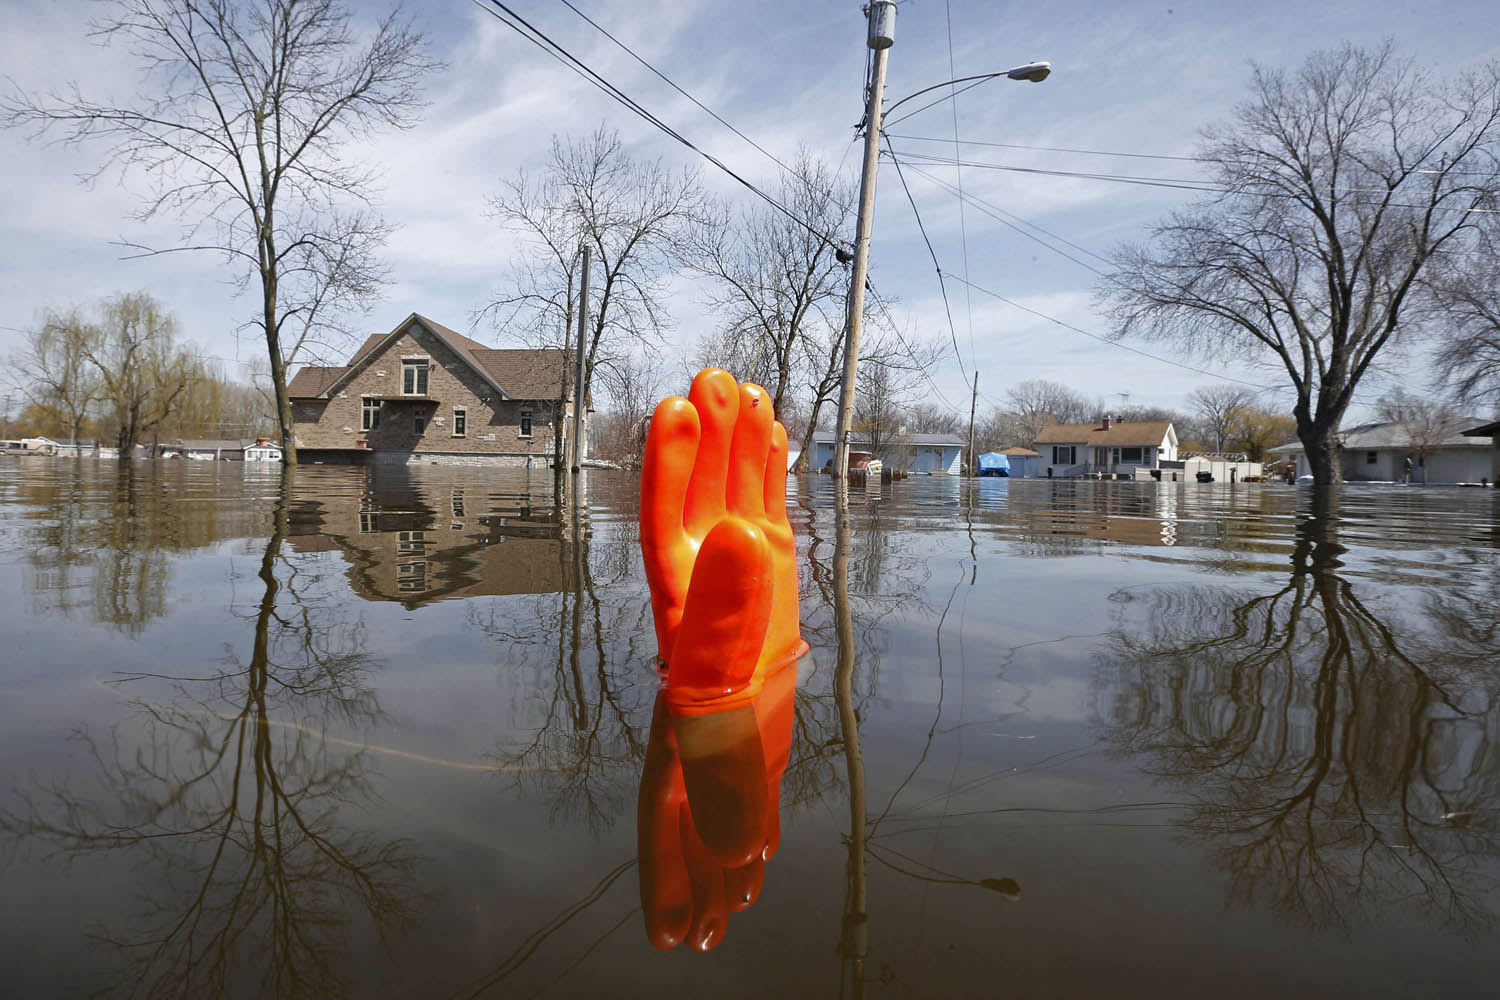 April 22, 2013. A rubber glove being used as a marker bobs in the water after flooding in Fox Lake, Illinois.